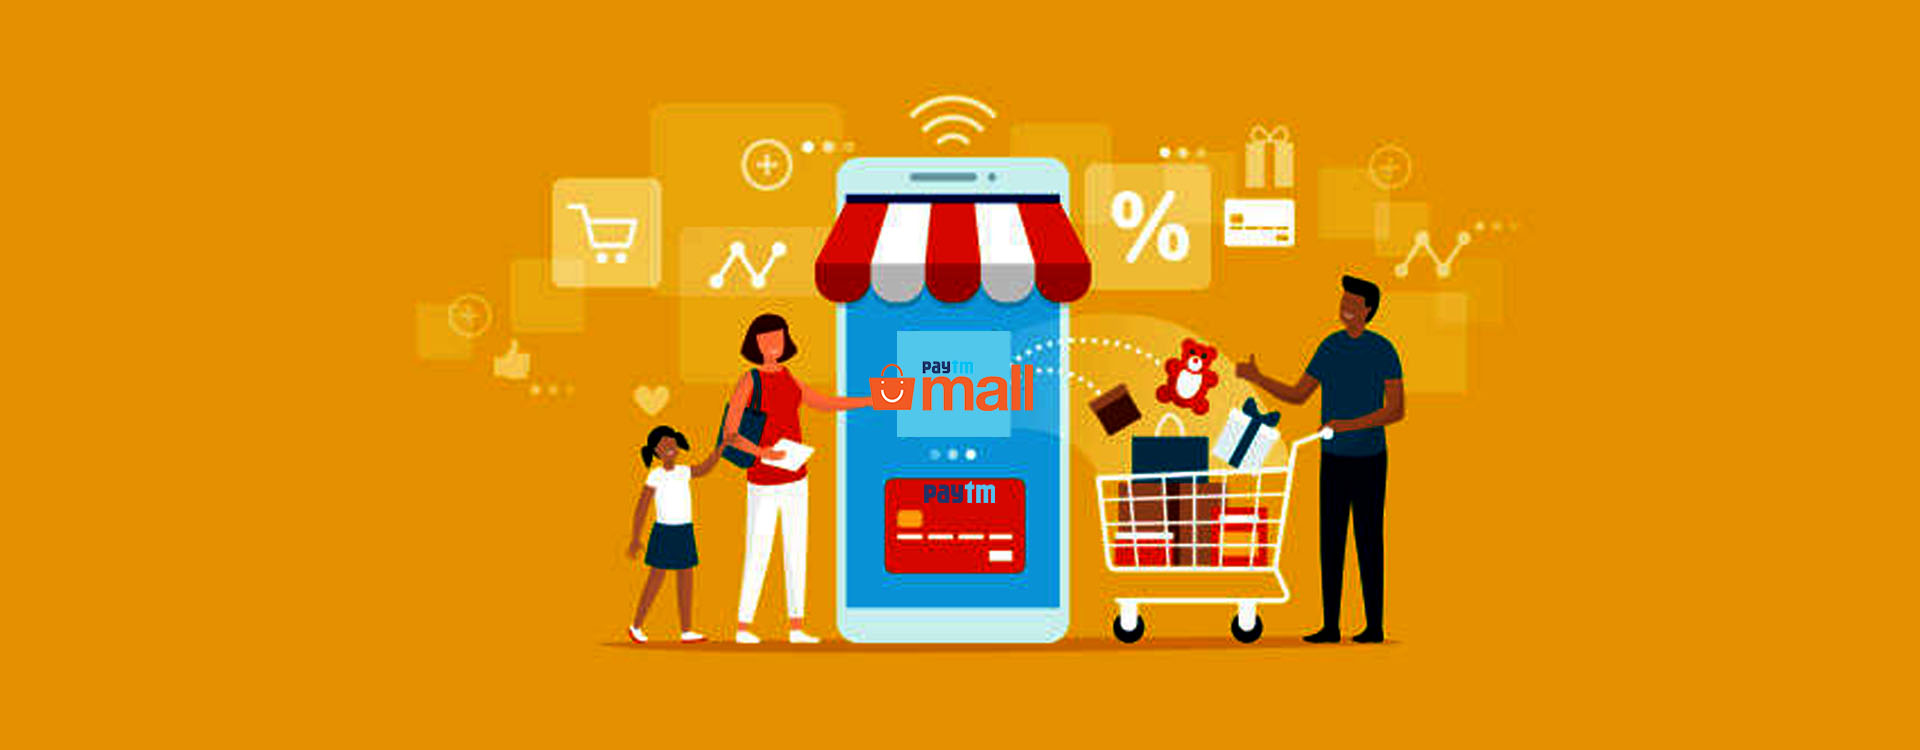 Paytm Mall: Taking Online Shopping a Step Further